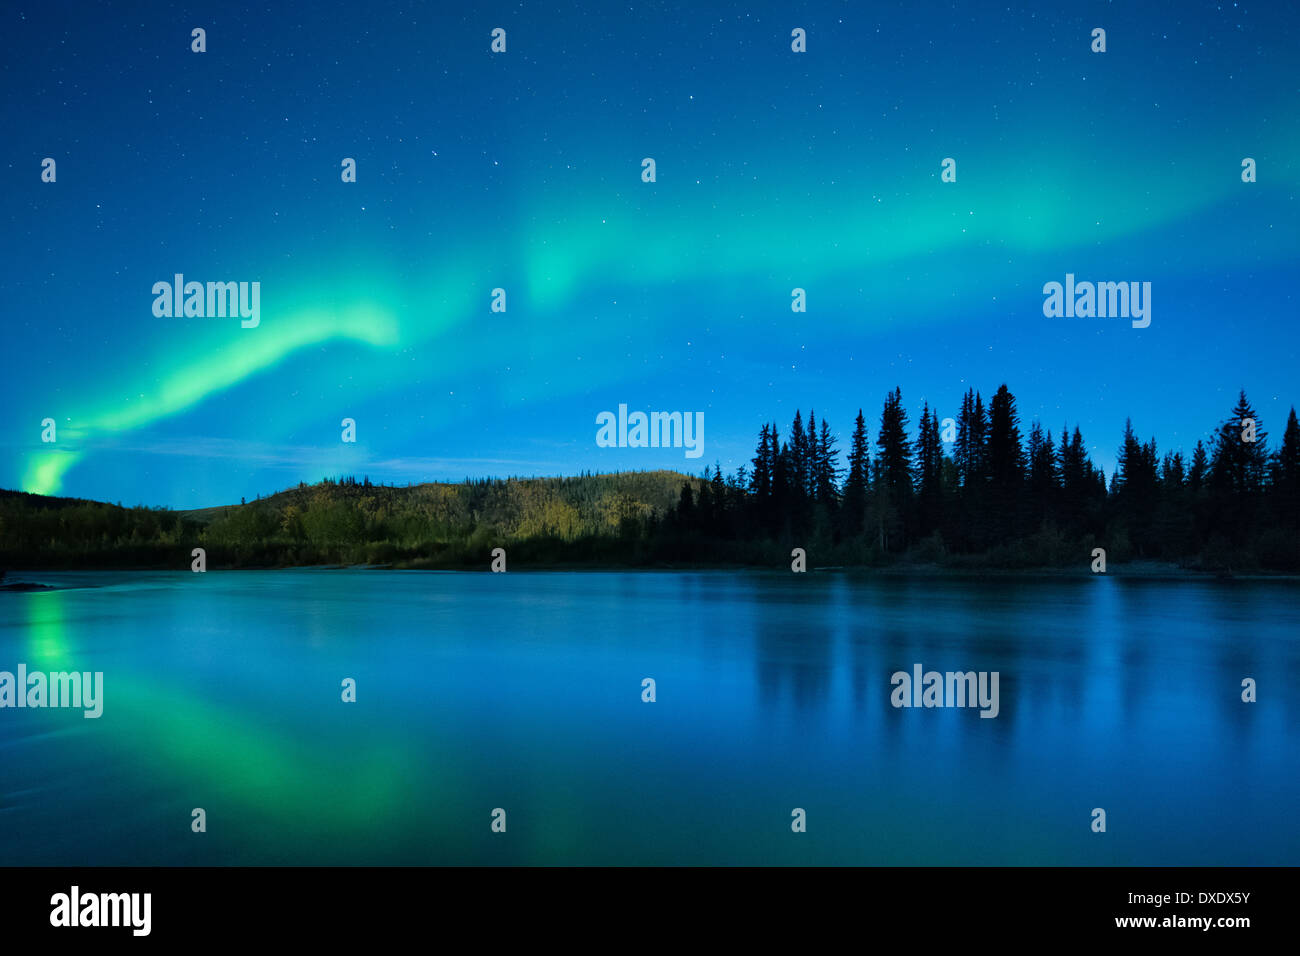 The Aurora Borealis (Northern Lights) over the Klondike River, Yukon Territories, Canada Stock Photo